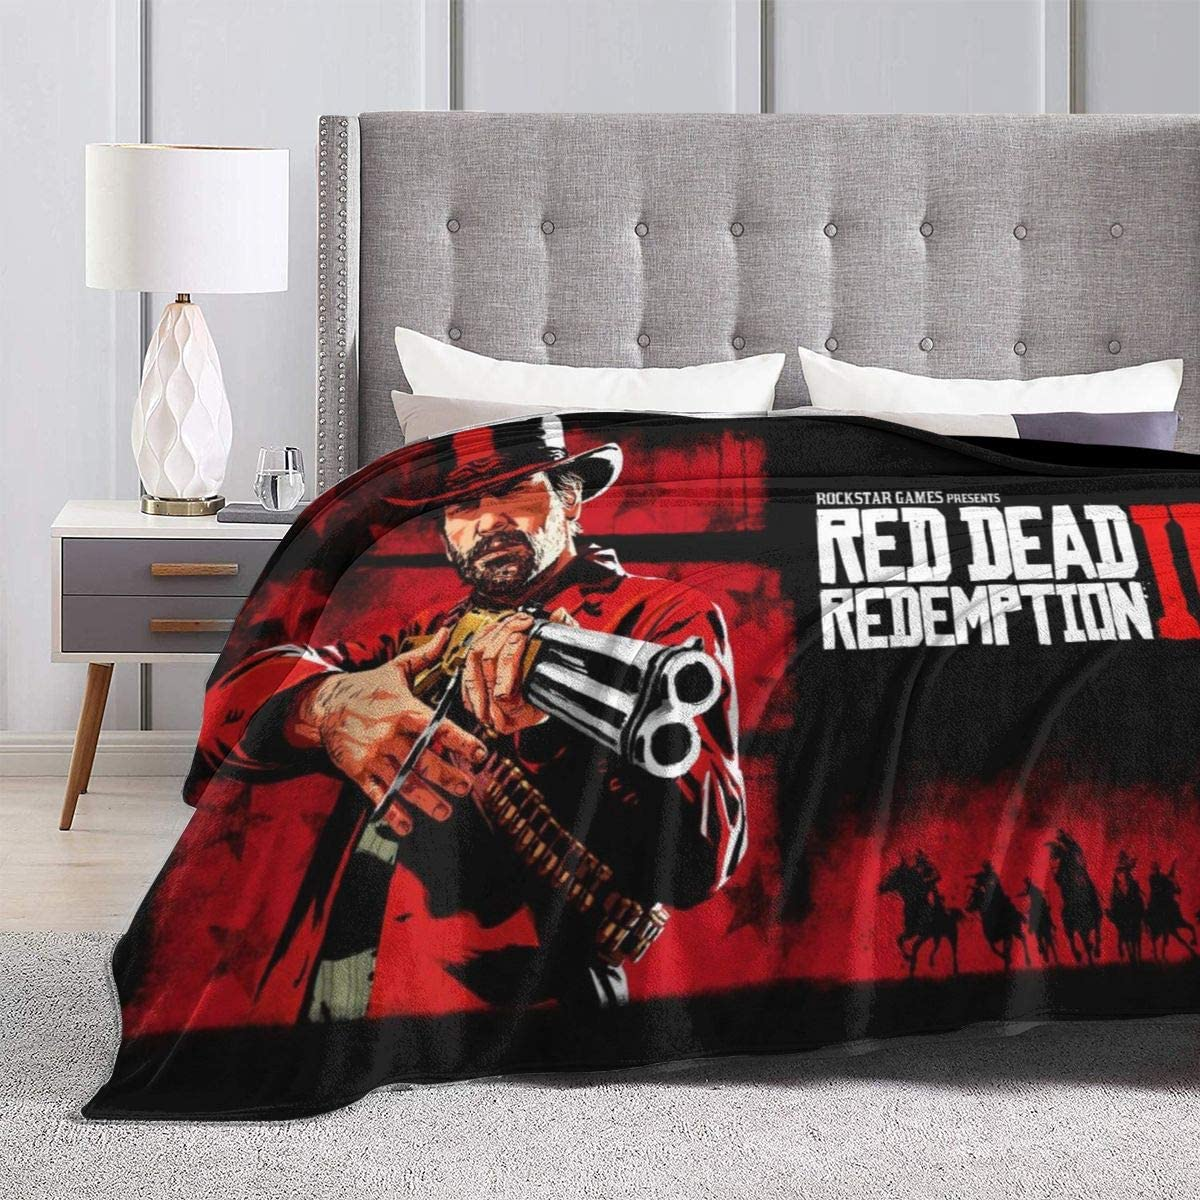 Amazon Com Patriciahmarin Red Dead Redemption 2 Blanket Soft Throw Blanket Flannel Lightweight Summer Fuzzy Thin Blanket For Couch Sofa Bed 80 X60 Home Kitchen